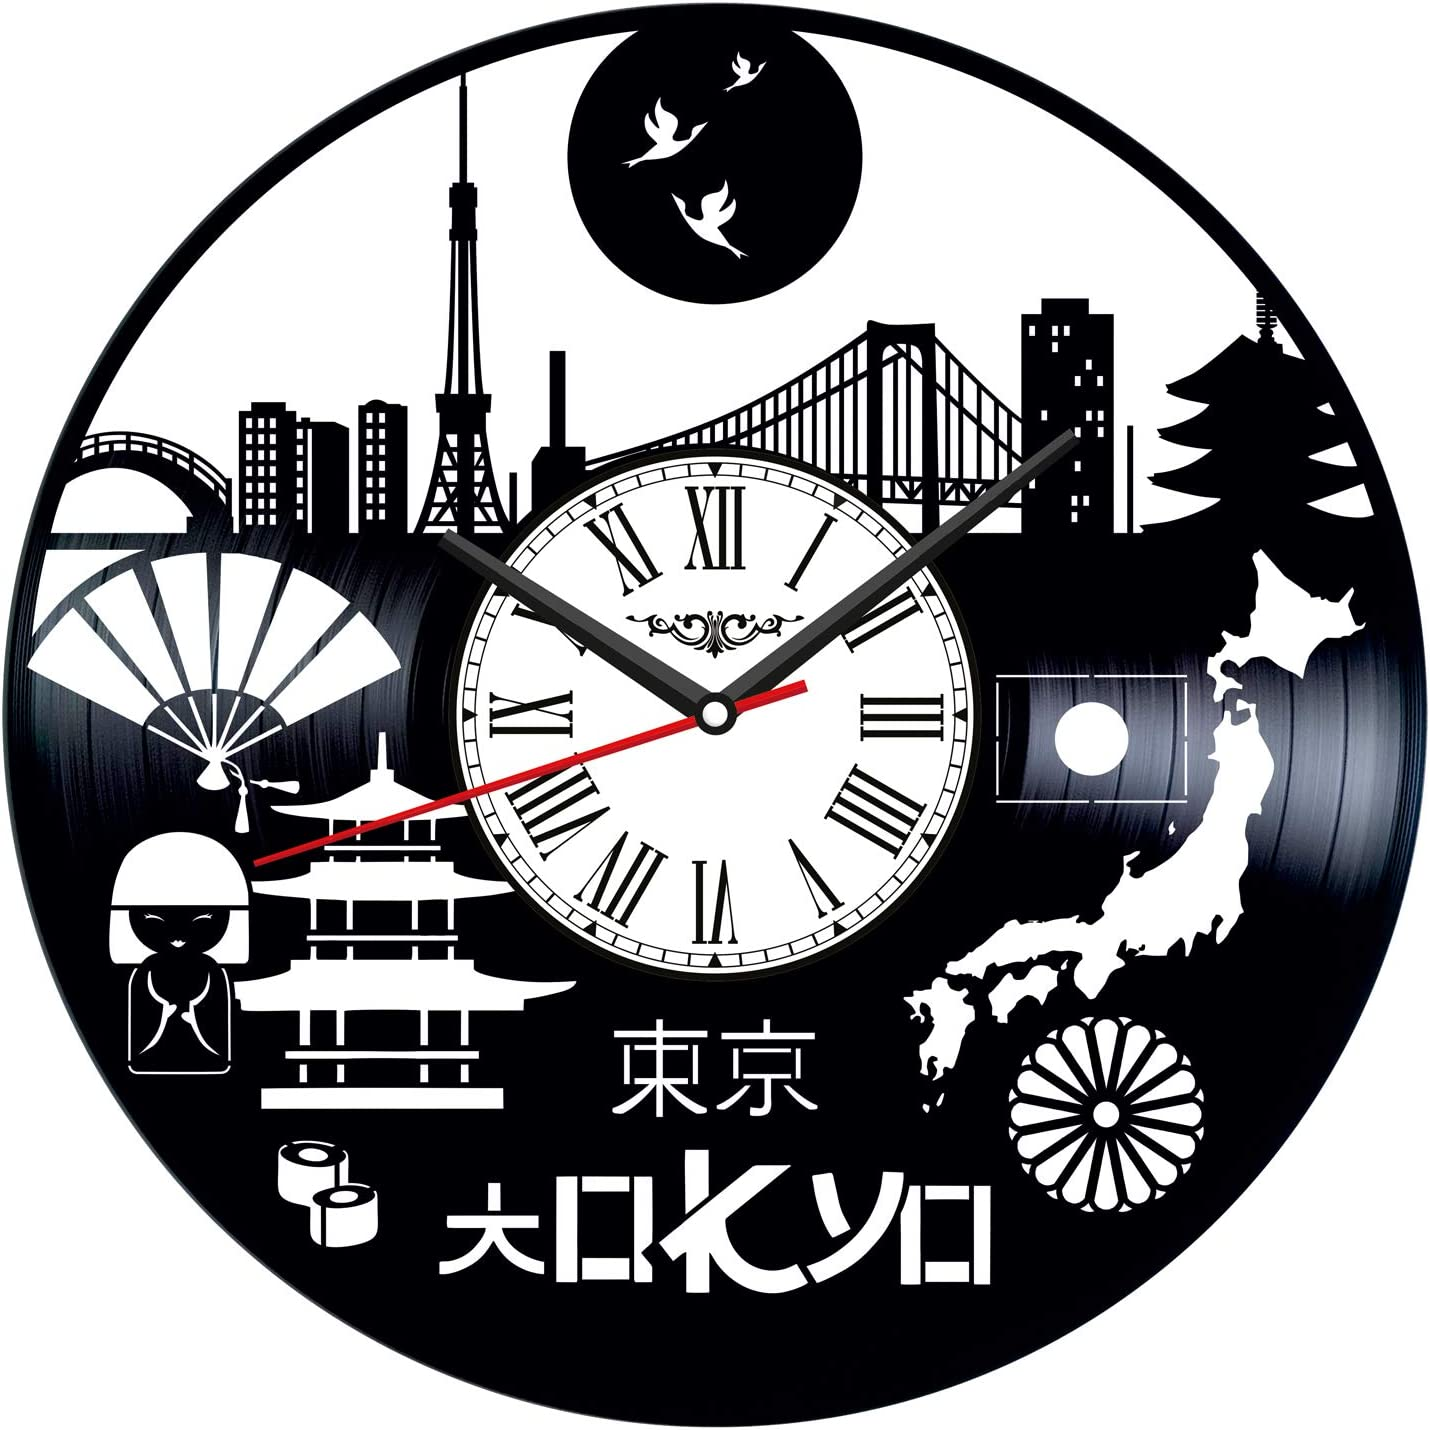 Tokyo Japan Vinyl Record Wall Clock Poster - Vintage Home Decor Kitchen Bedroom Living Room Office - Unique Handmade Gift for Men Woman Friends Boys - 12 inches